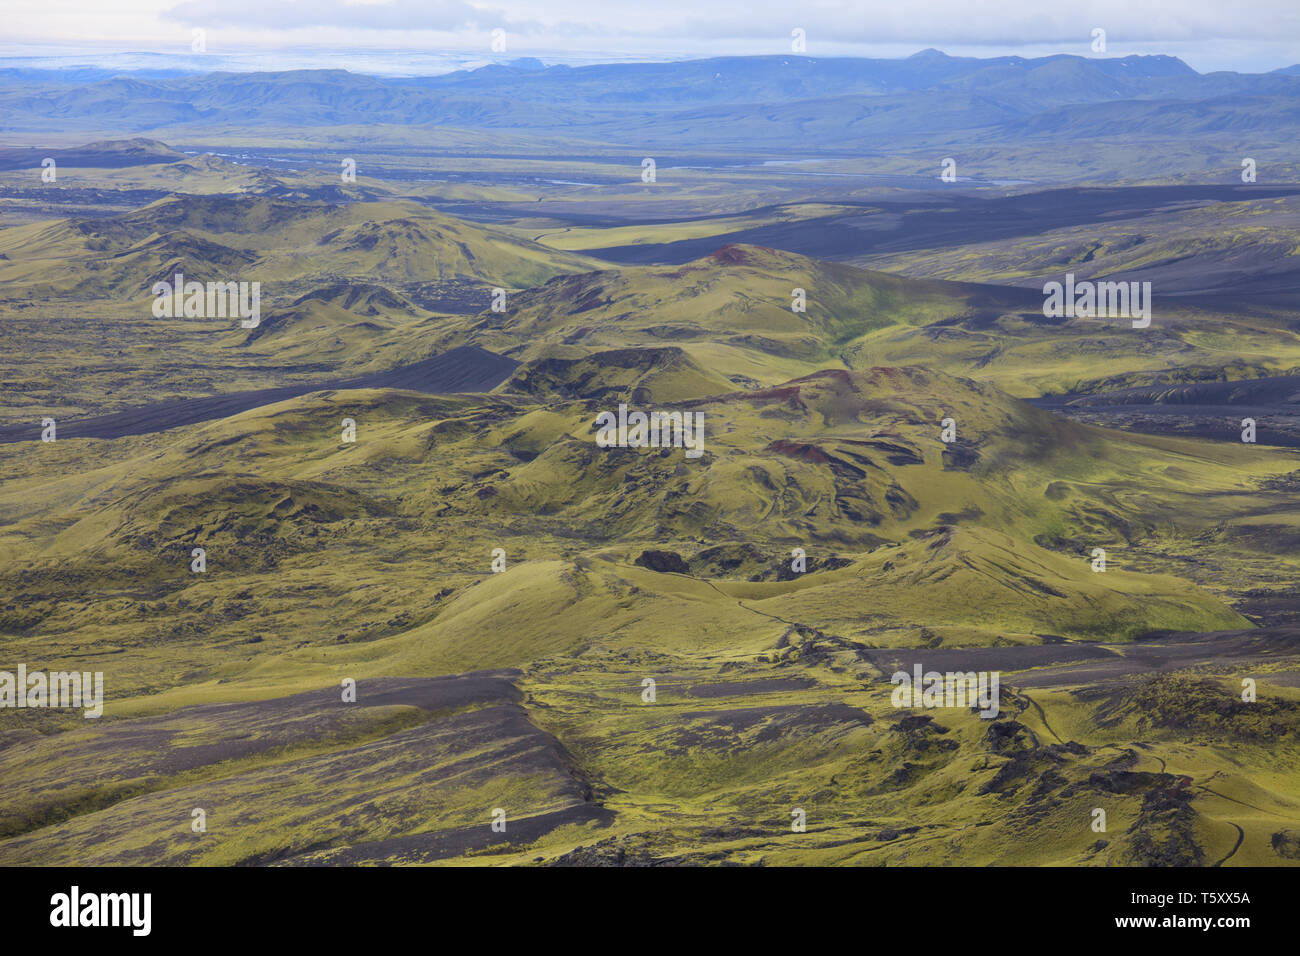 Dramatic iceland landscape of Craters of Laki volcanic fissure with a green hill and black lava looks like a moon - Stock Image